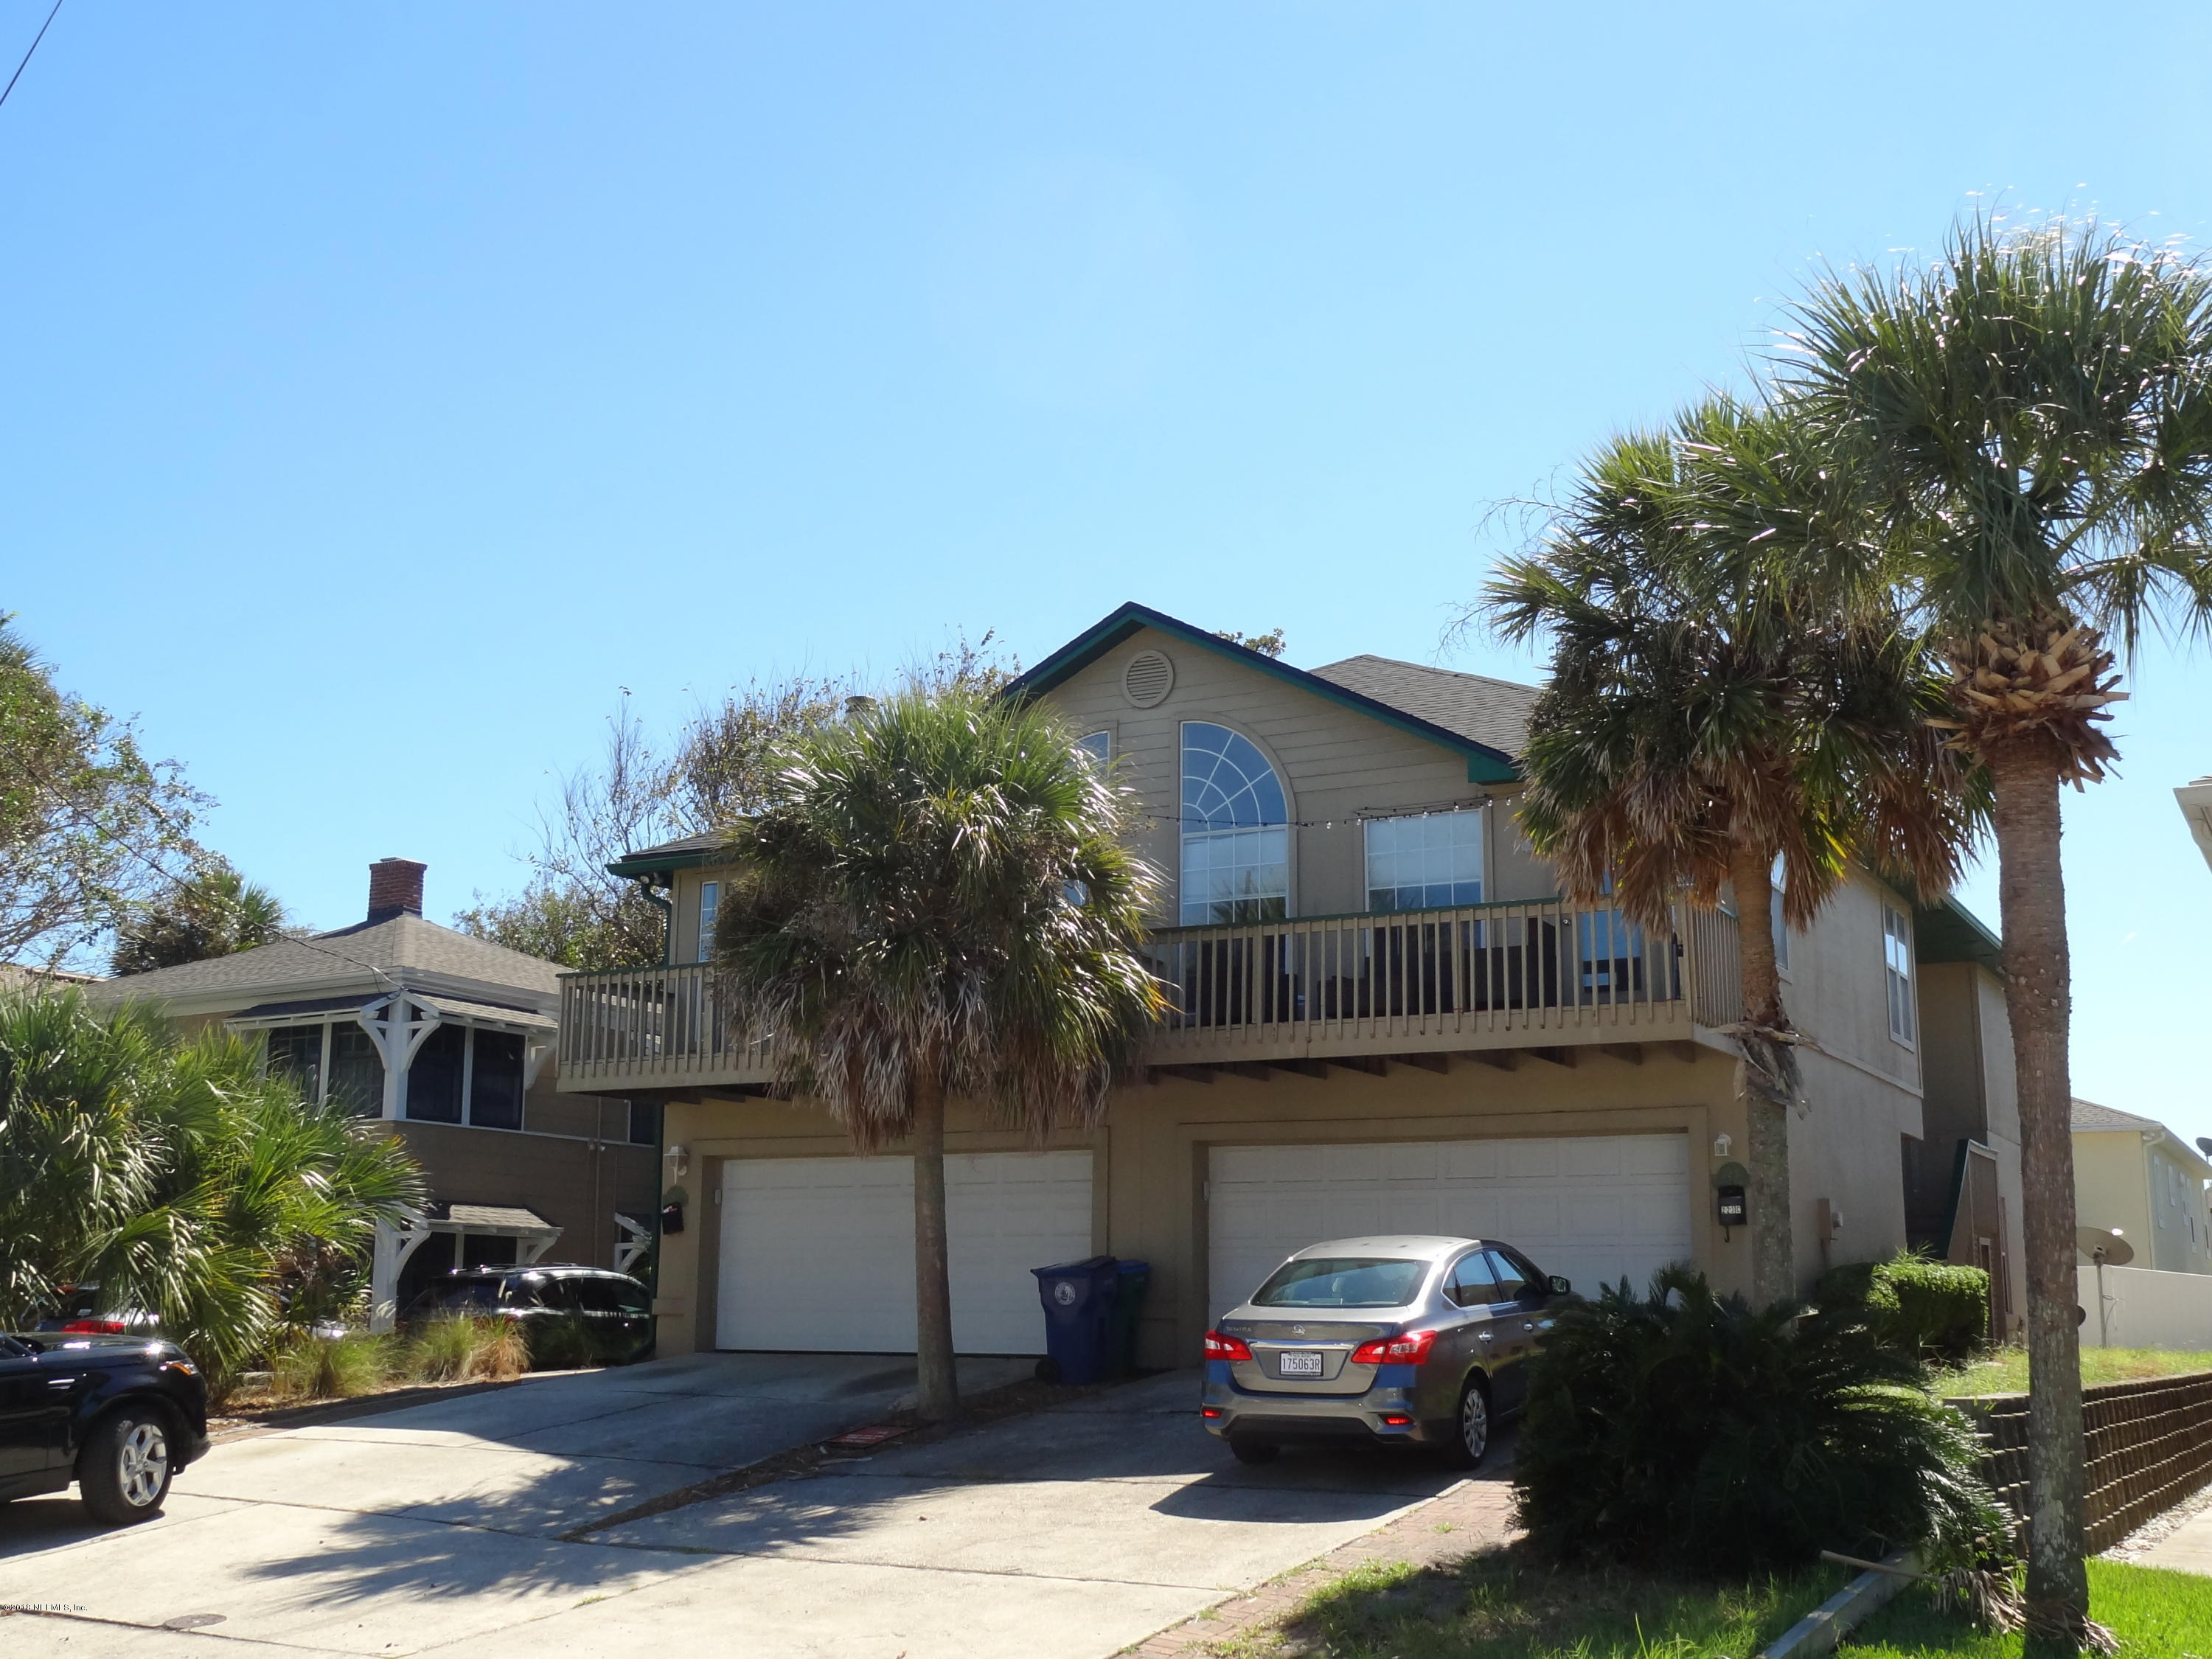 223 SOUTH, NEPTUNE BEACH, FLORIDA 32266, 6 Bedrooms Bedrooms, ,4 BathroomsBathrooms,Single family,For sale,SOUTH,962358